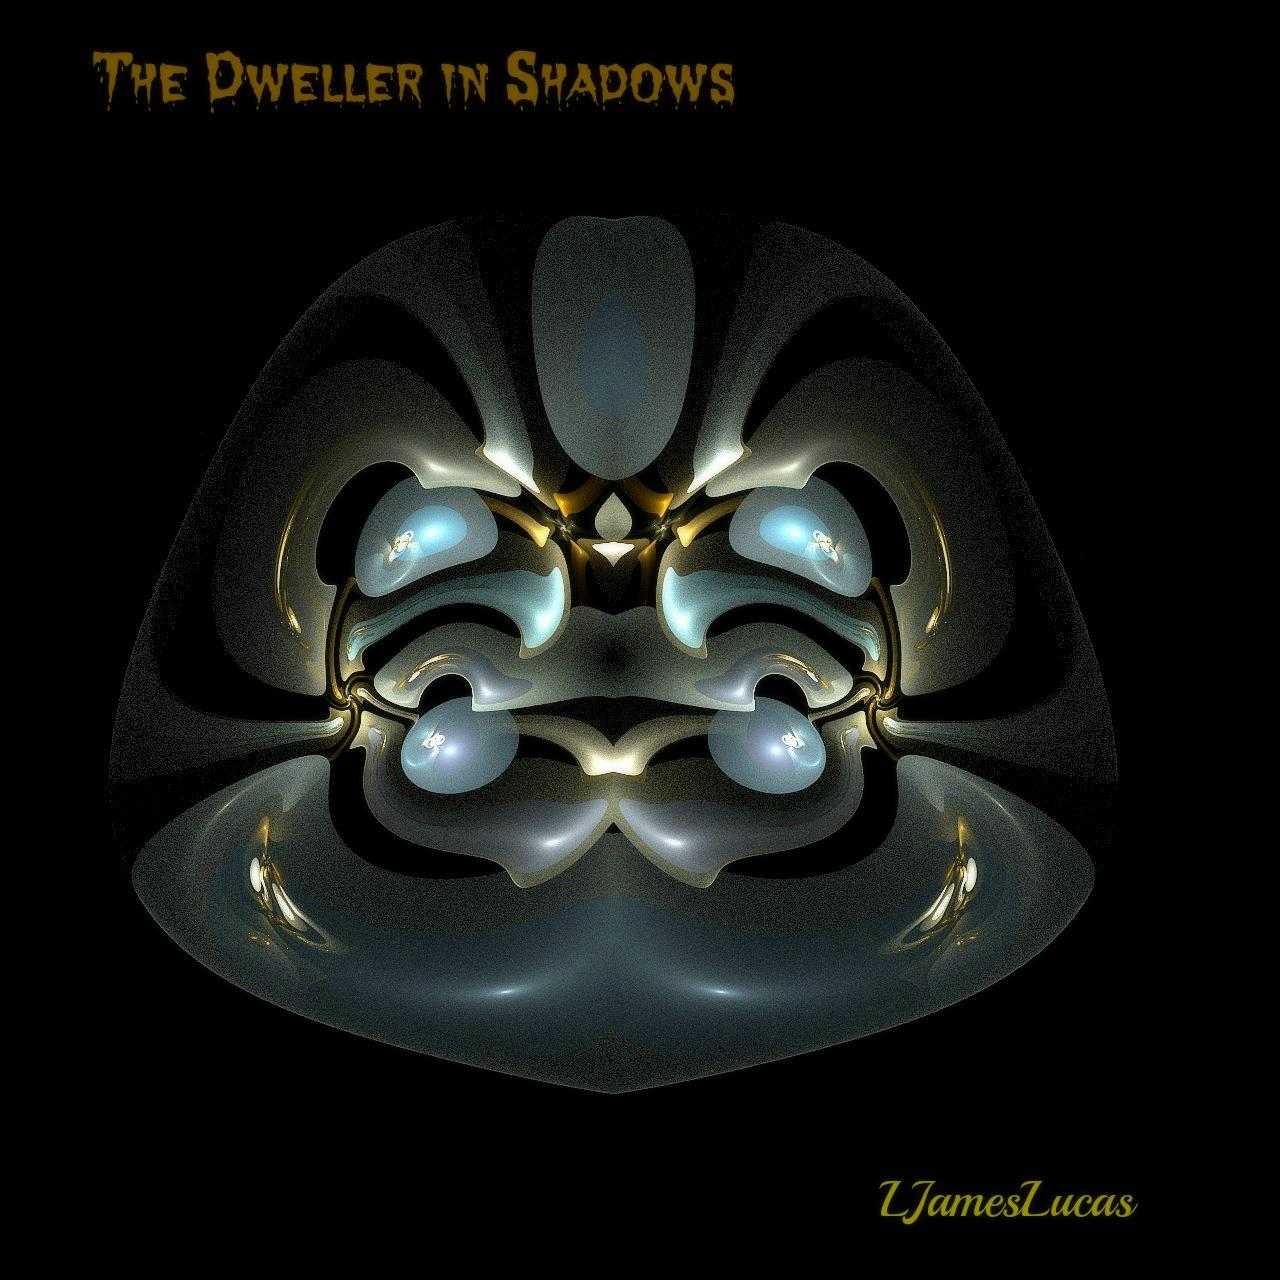 The Dweller in Shadows